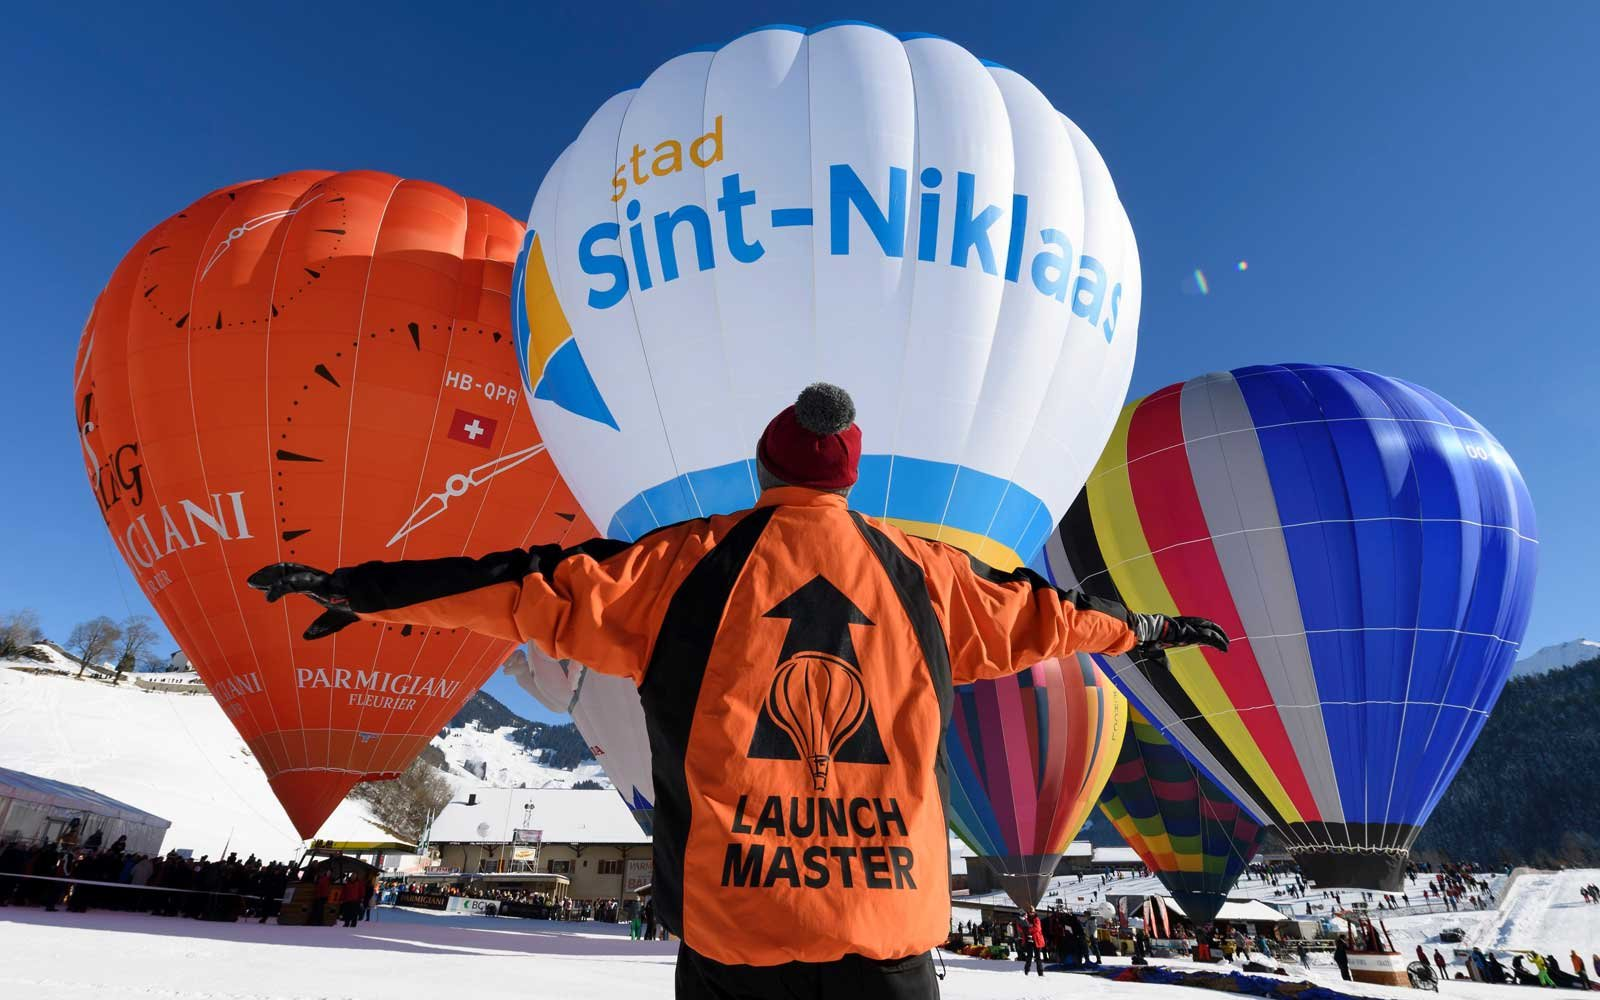 A launch master coordinates hot air balloons on January 21, 2017 at the Chateau-d'Oex ski resort, on the opening day of the 39th International Hot Air Balloon festival